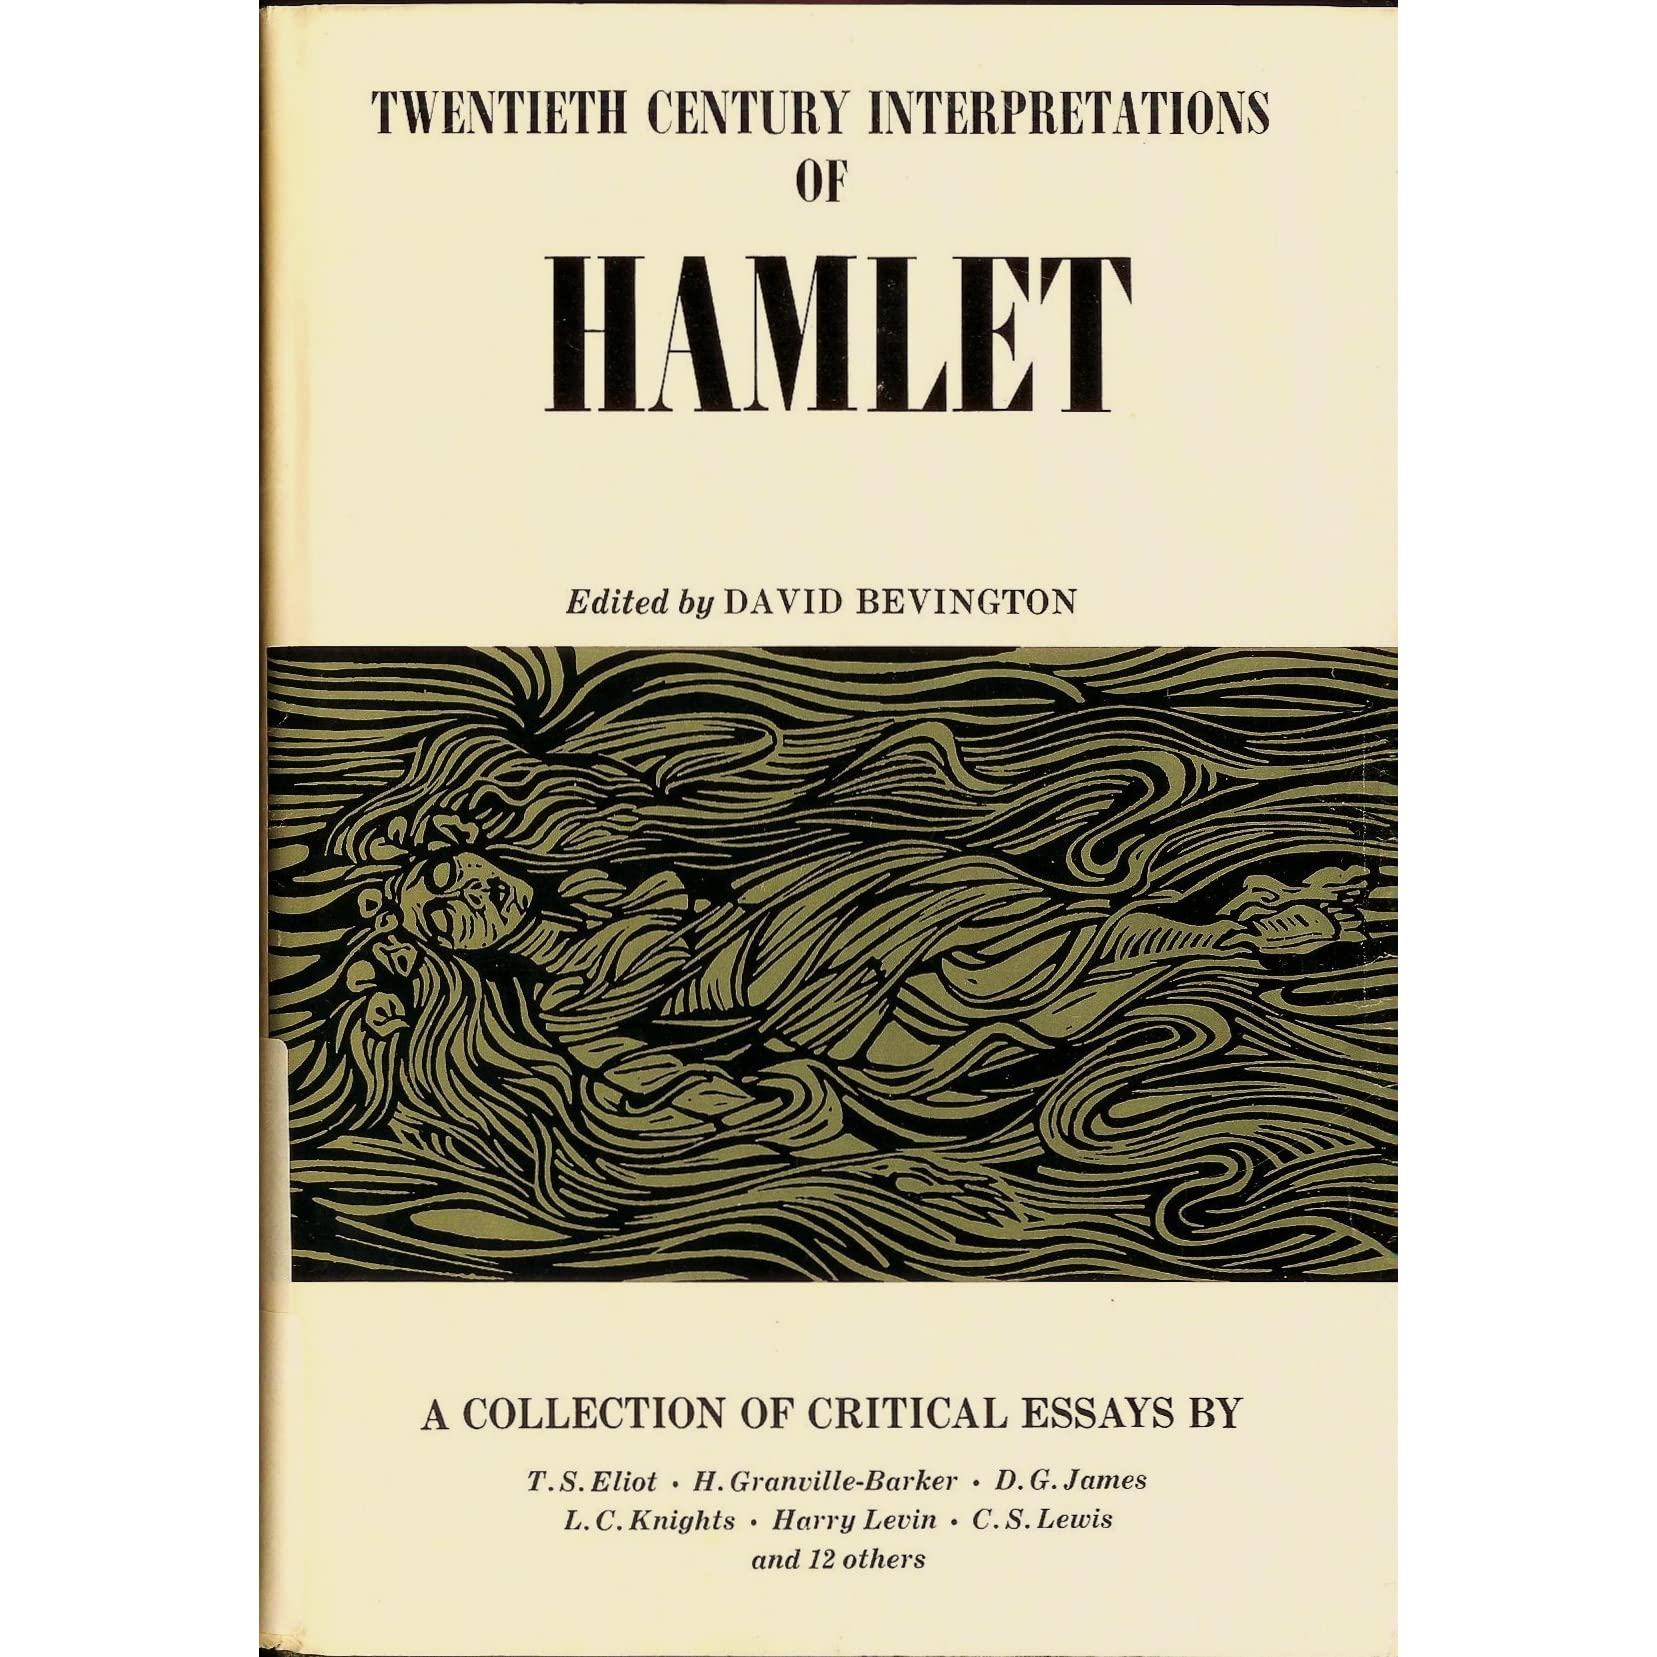 twentieth century interpretations of hamlet a collection of twentieth century interpretations of hamlet a collection of critical essays by david bevington reviews discussion bookclubs lists